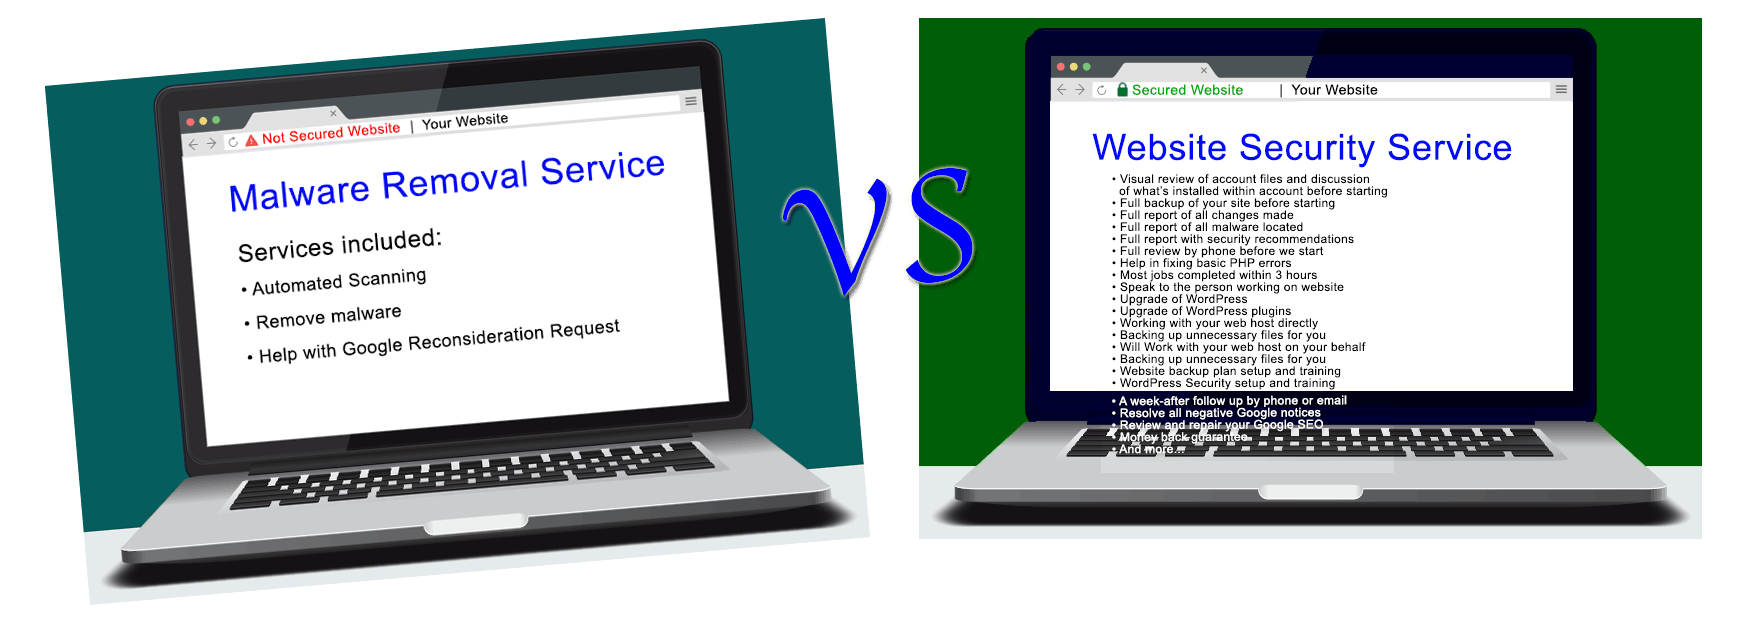 Website Security Service versus Malware Removal Service